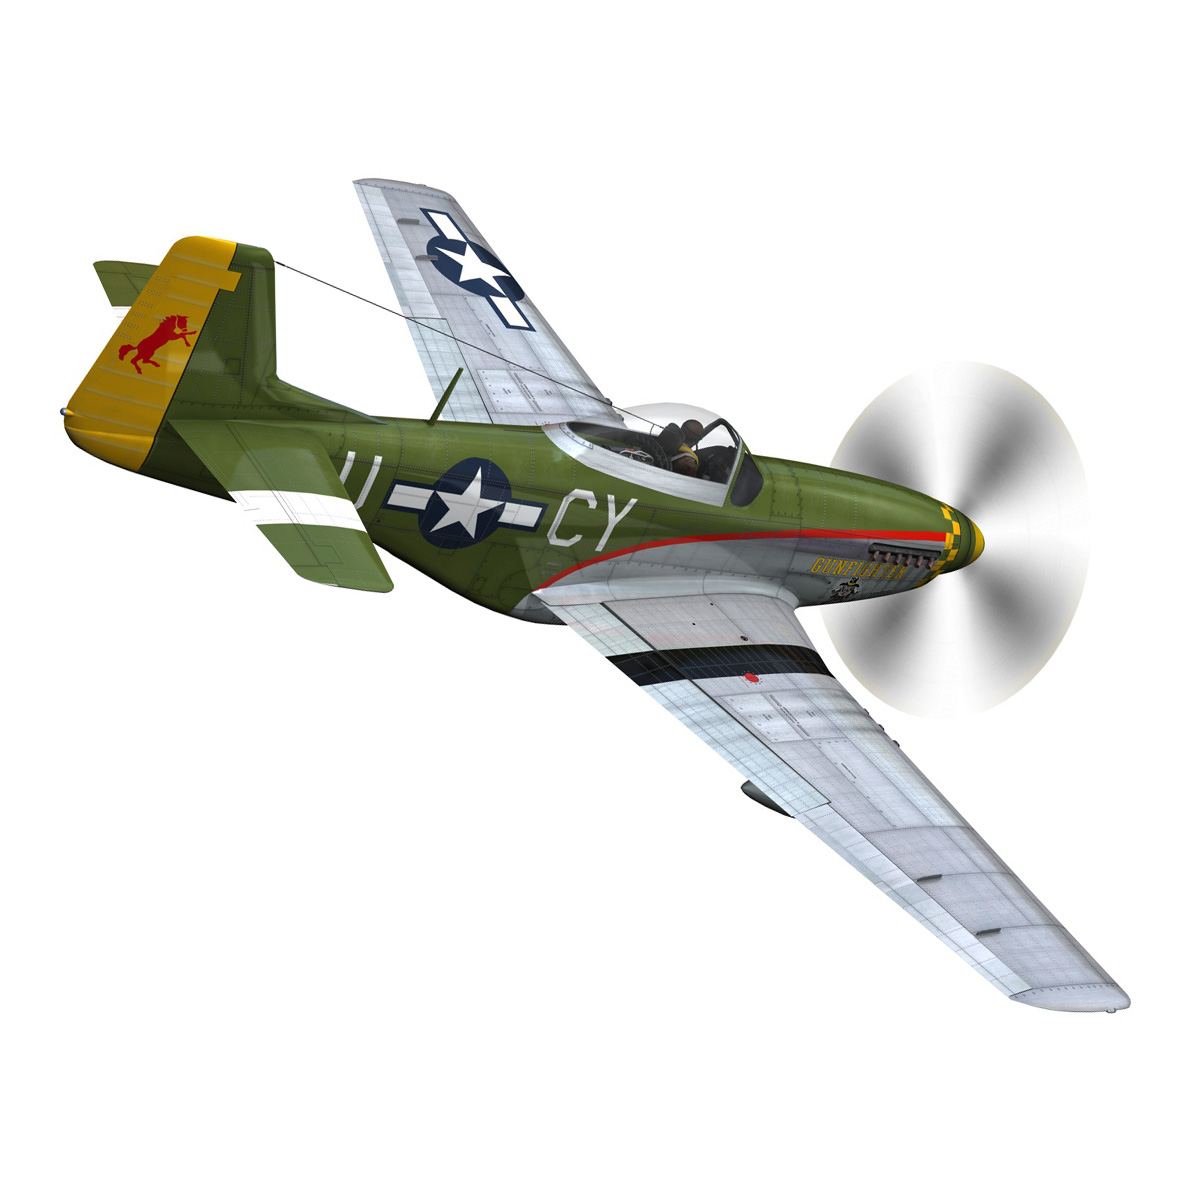 north american p-51d mustang – gunfighter 3d model fbx c4d lwo obj 269574